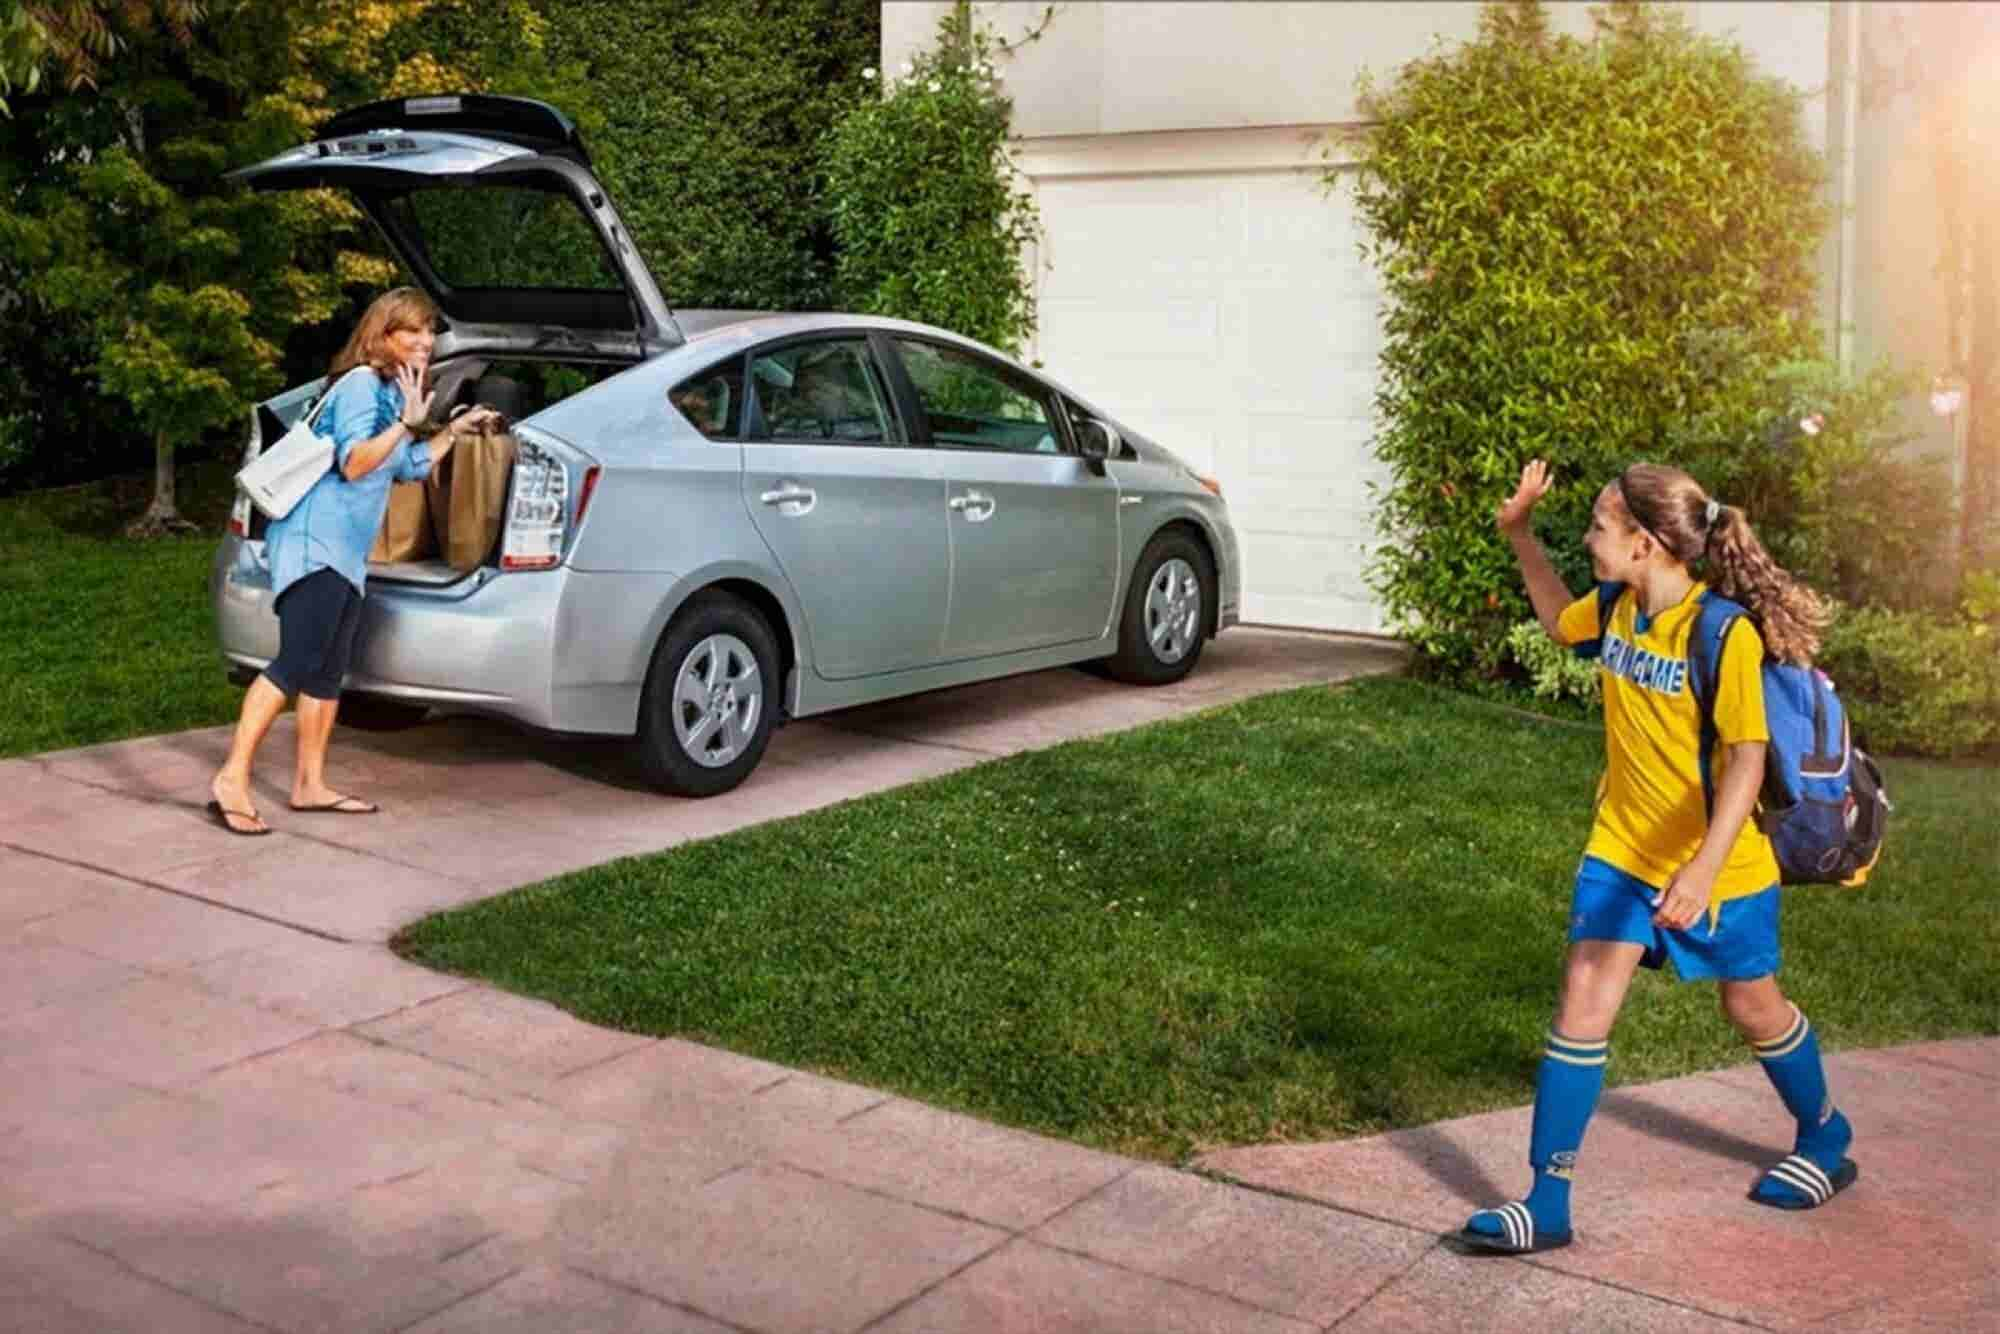 'Uber For Kids' Is Shutting Down After Failing to Get More Funding